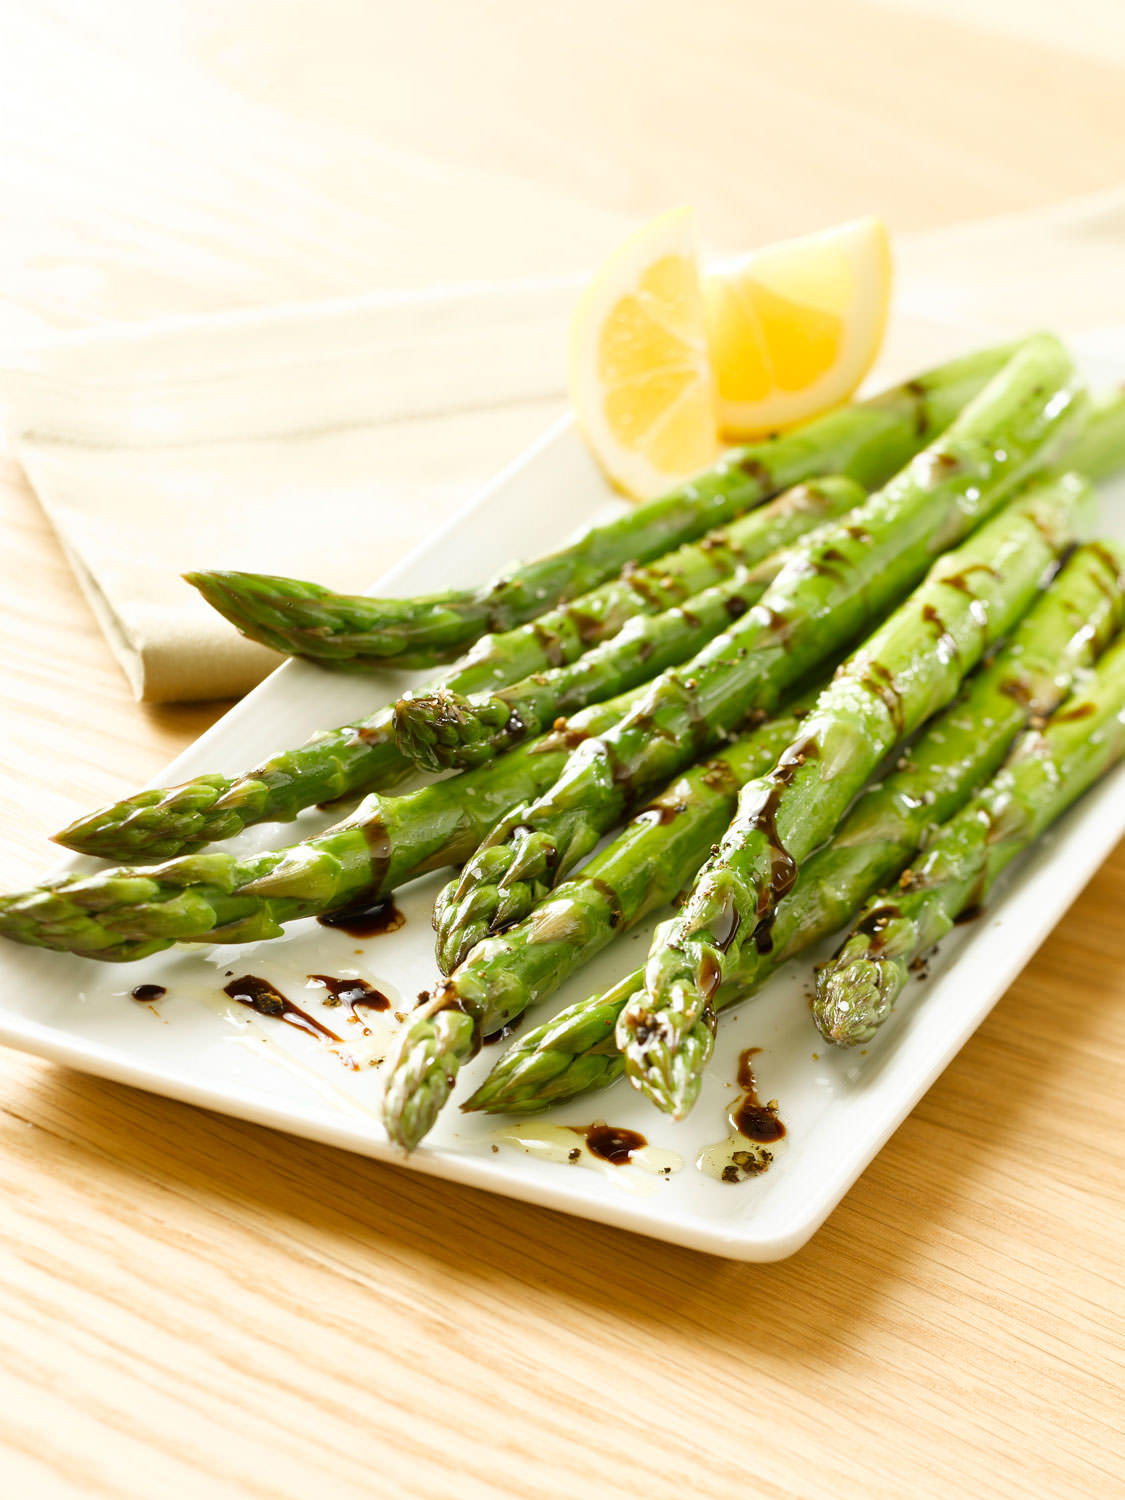 Roasted asparagus with traditional balsamic binegar